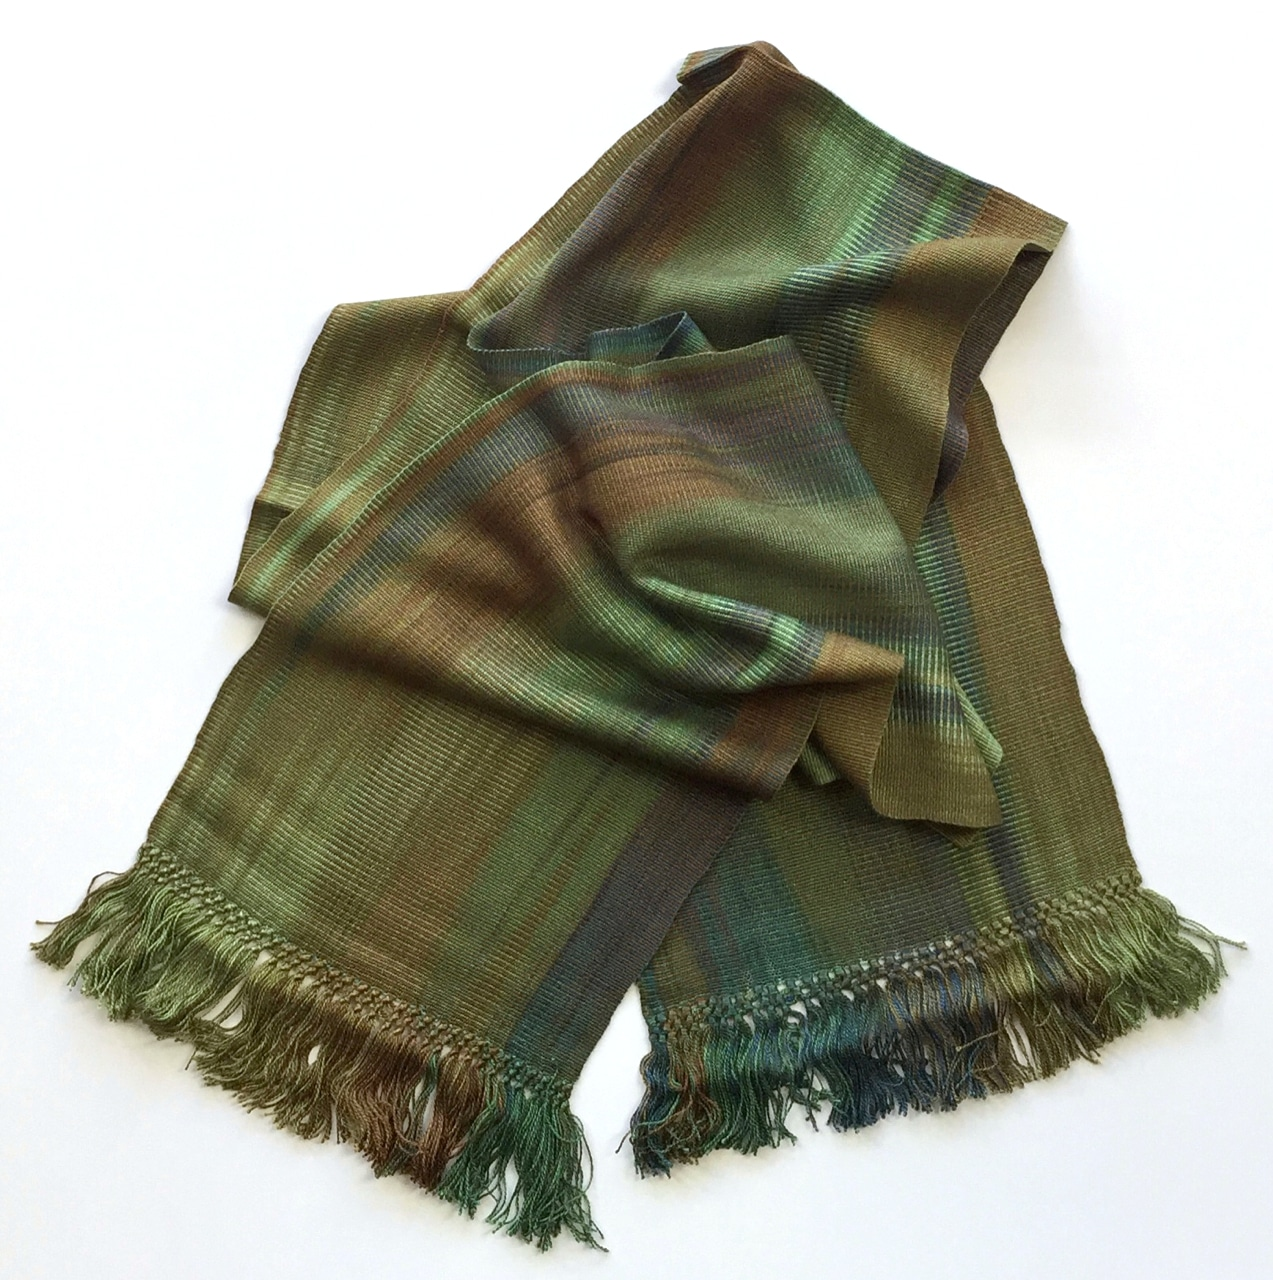 Greens, Brown, Copper - Lightweight Bamboo Handwoven Scarf 8 x 68